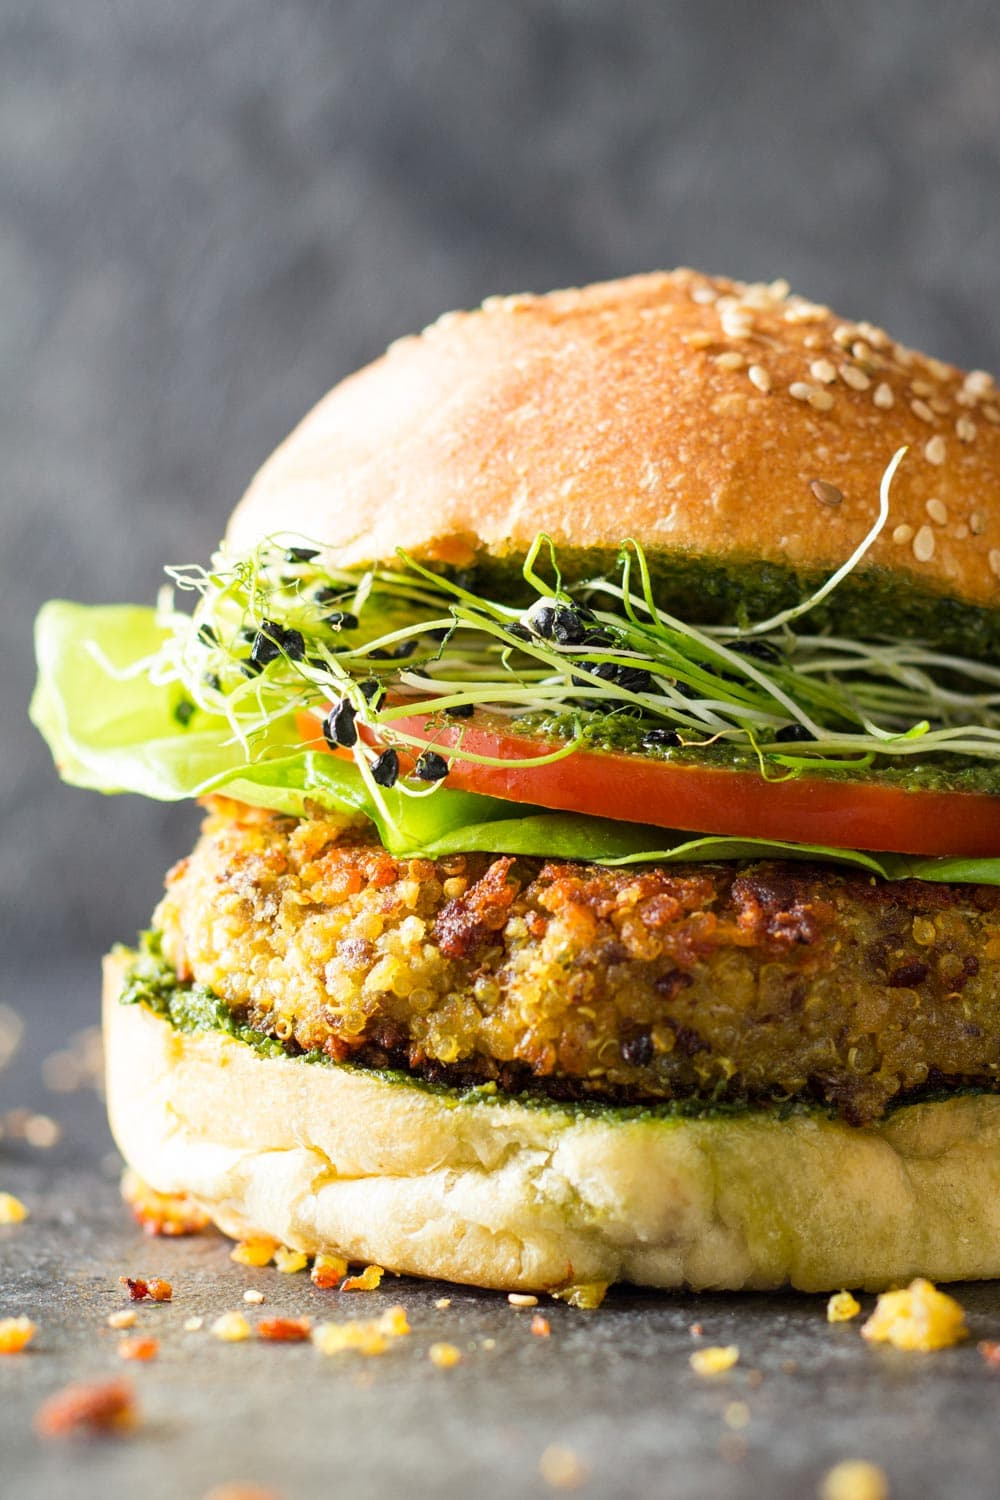 30-Minute Quinoa Burger